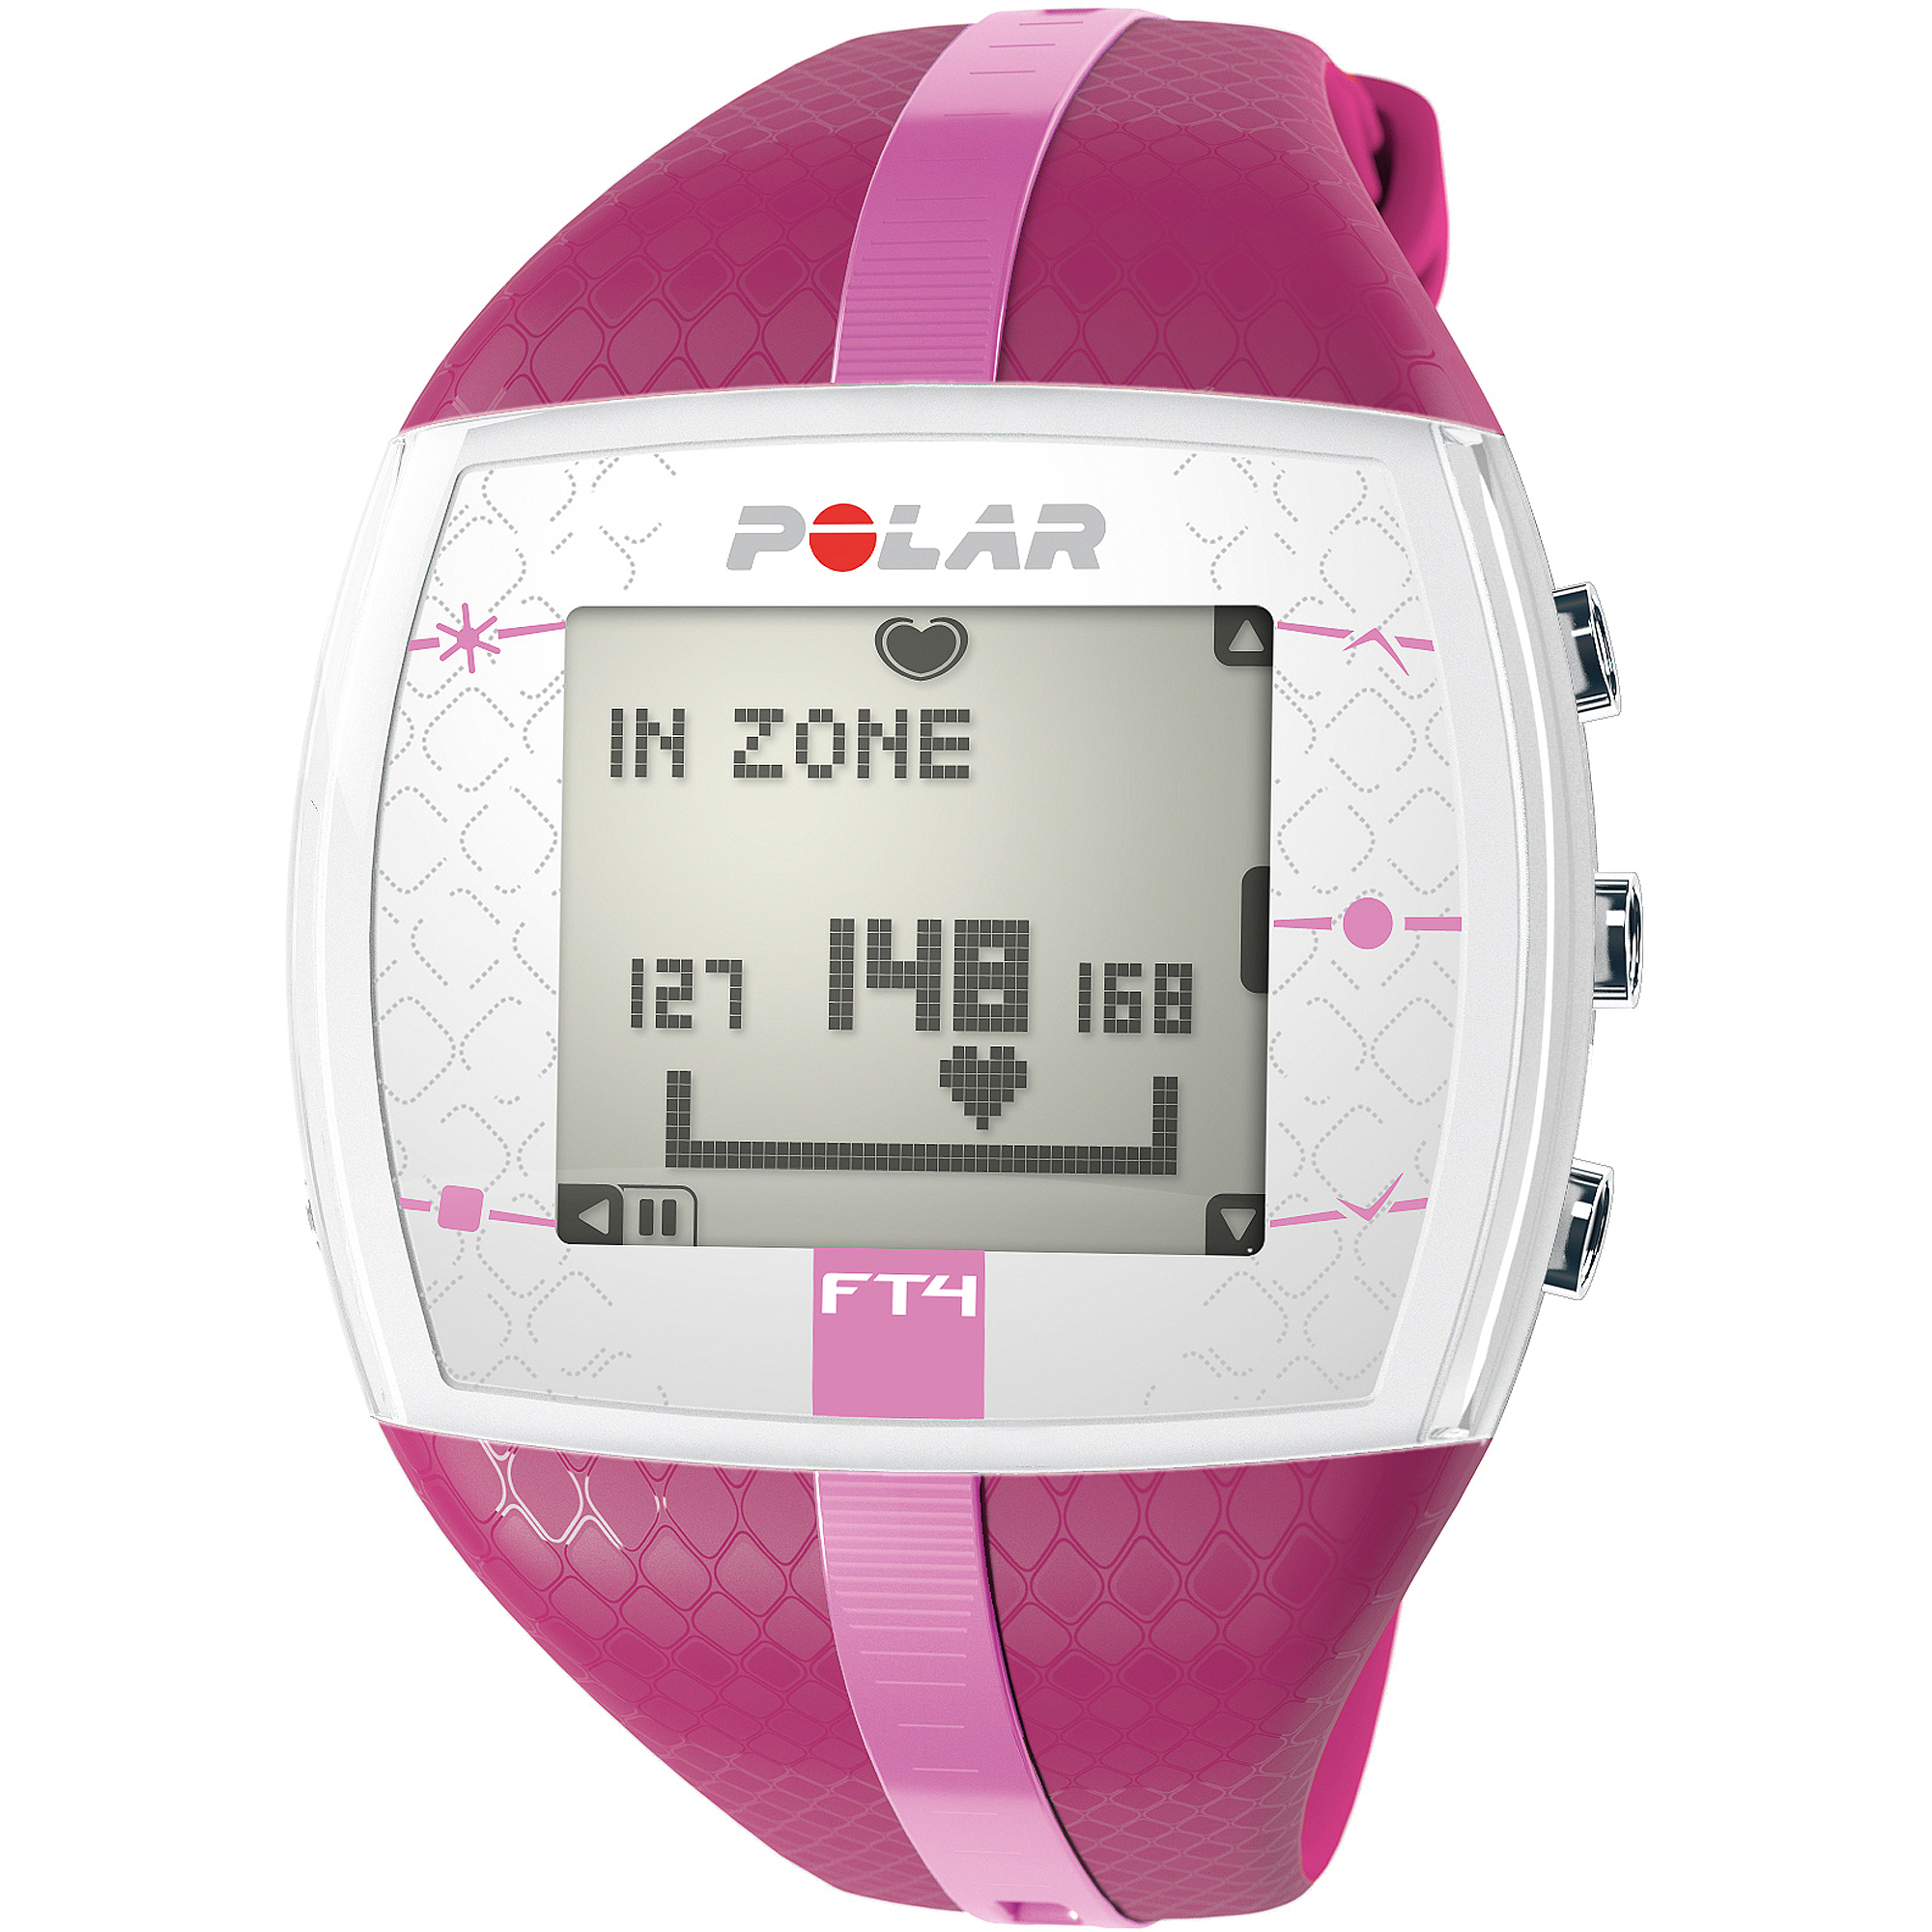 Polar FT4 Women's Heart Rate Monitor Purple/Pink POLAR FT4F PURPLE